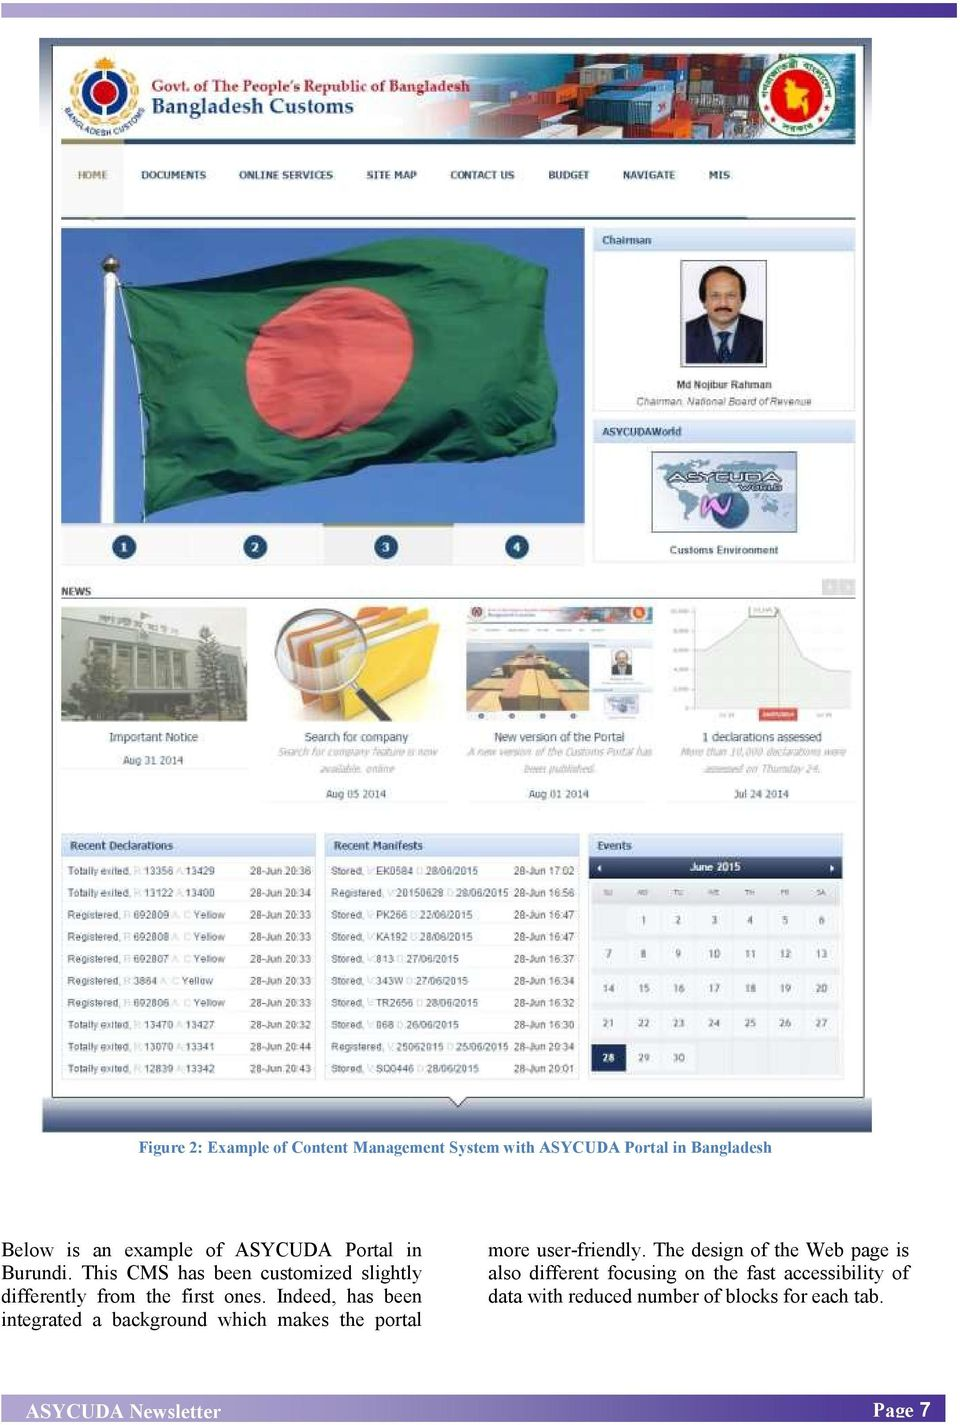 Indeed, has been integrated a background which makes the portal more user-friendly.